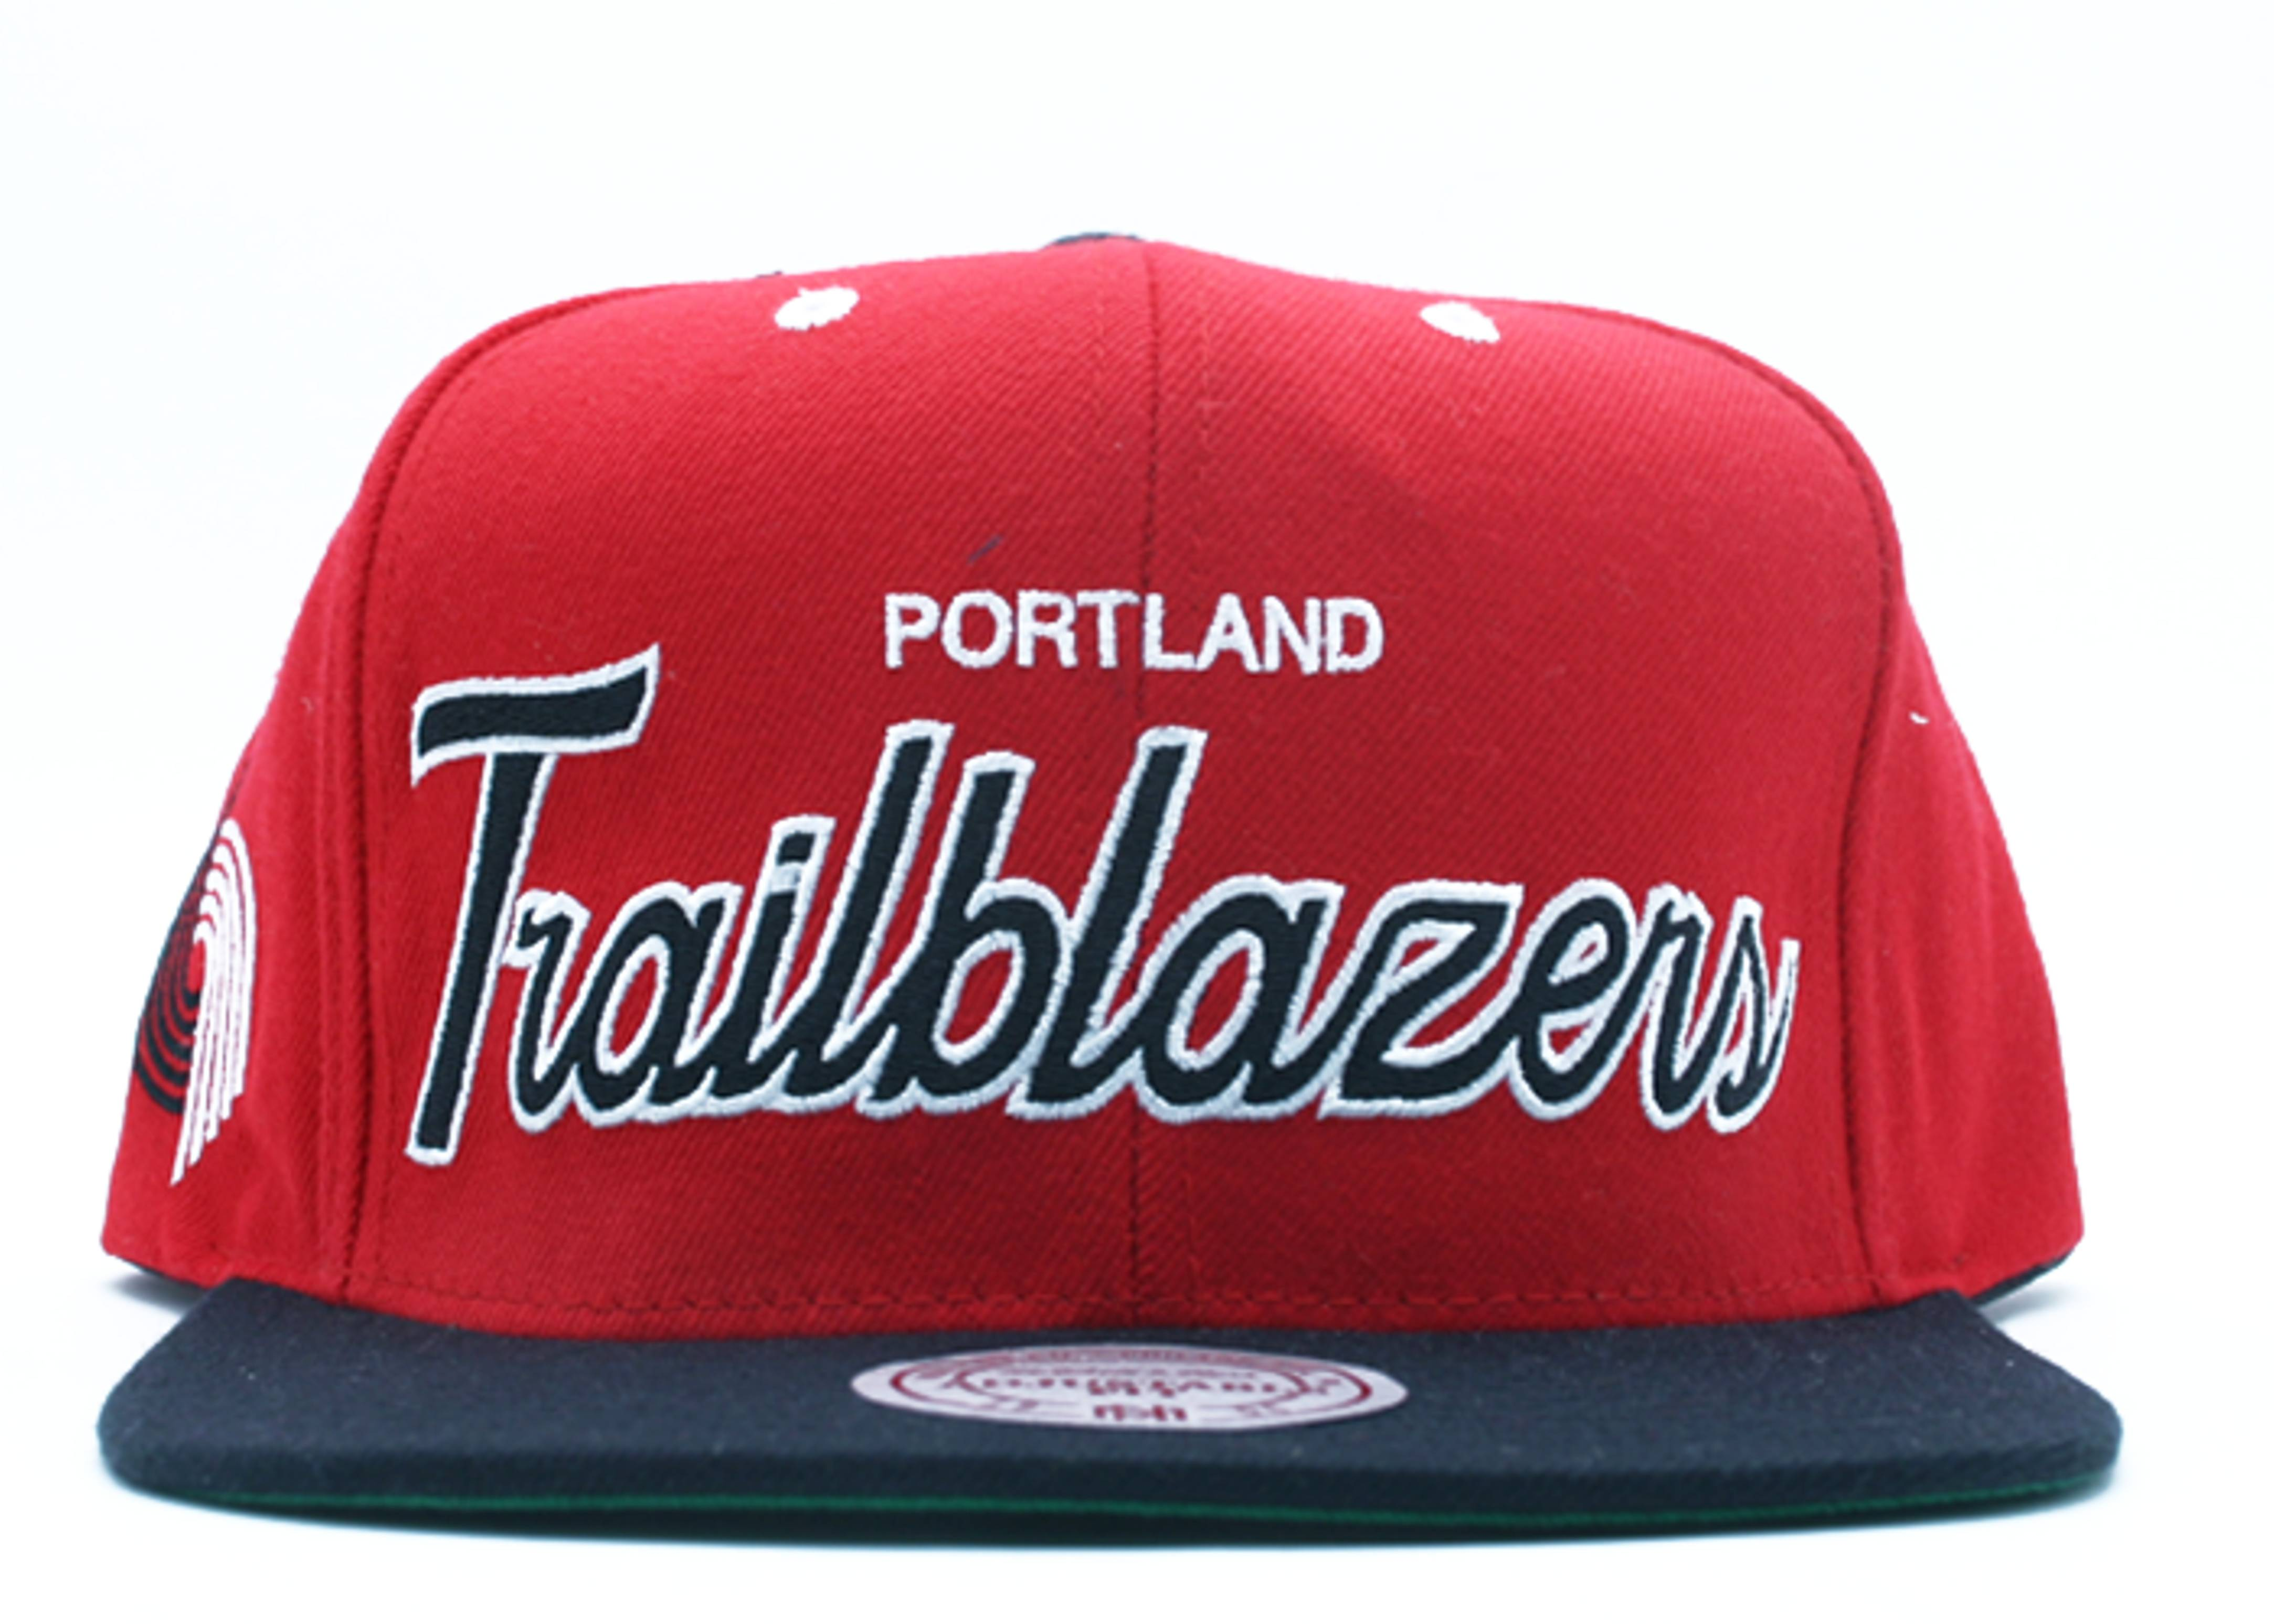 portland trailblazers snap-back